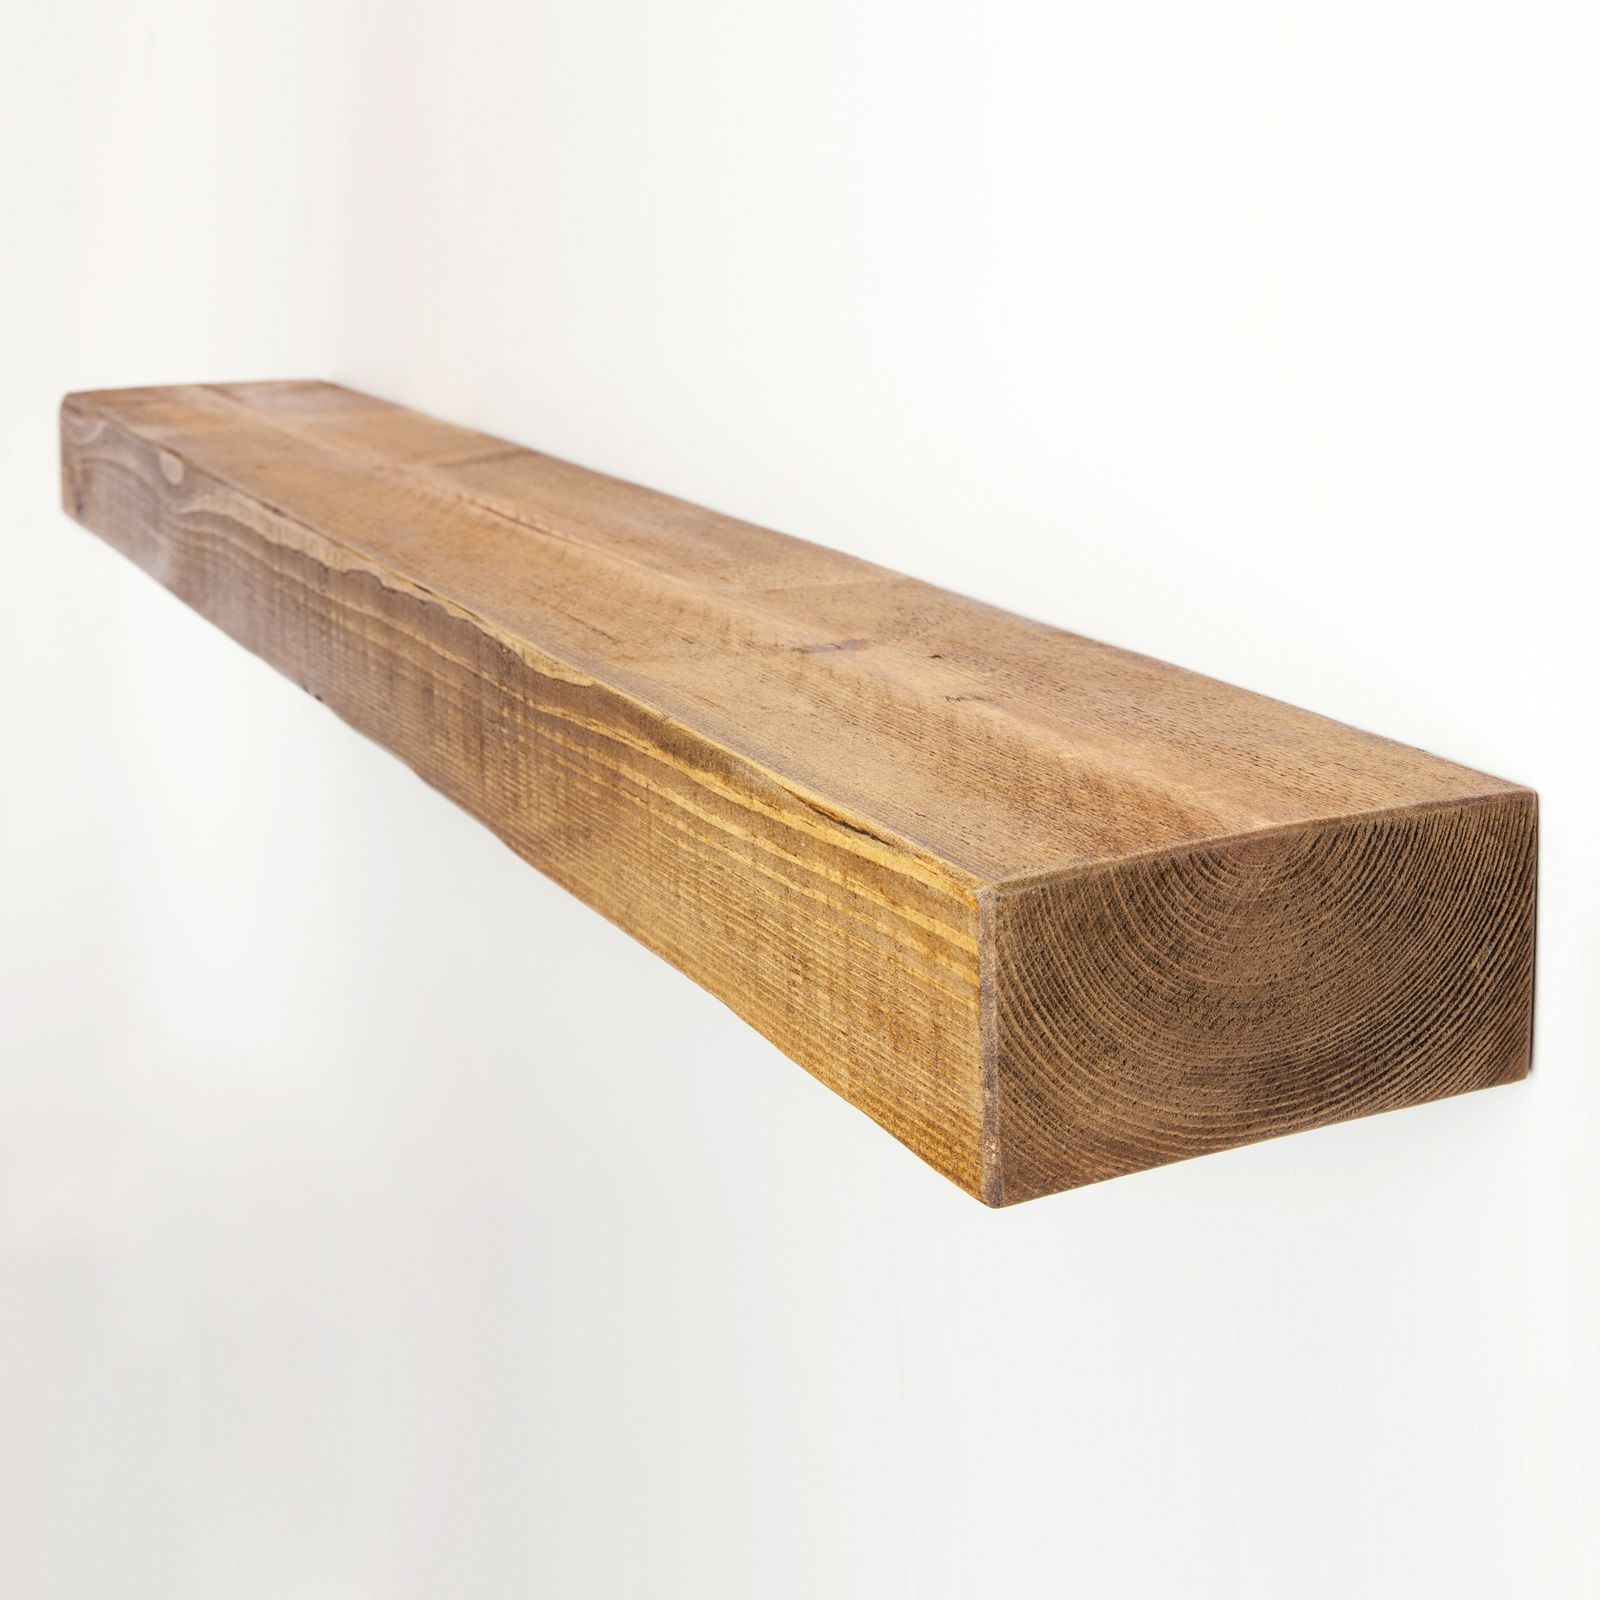 Rustic Floating Shelf 6×3 Solid Pine Funky Chunky Furniture Pertaining To 50cm Floating Shelf (Image 12 of 15)